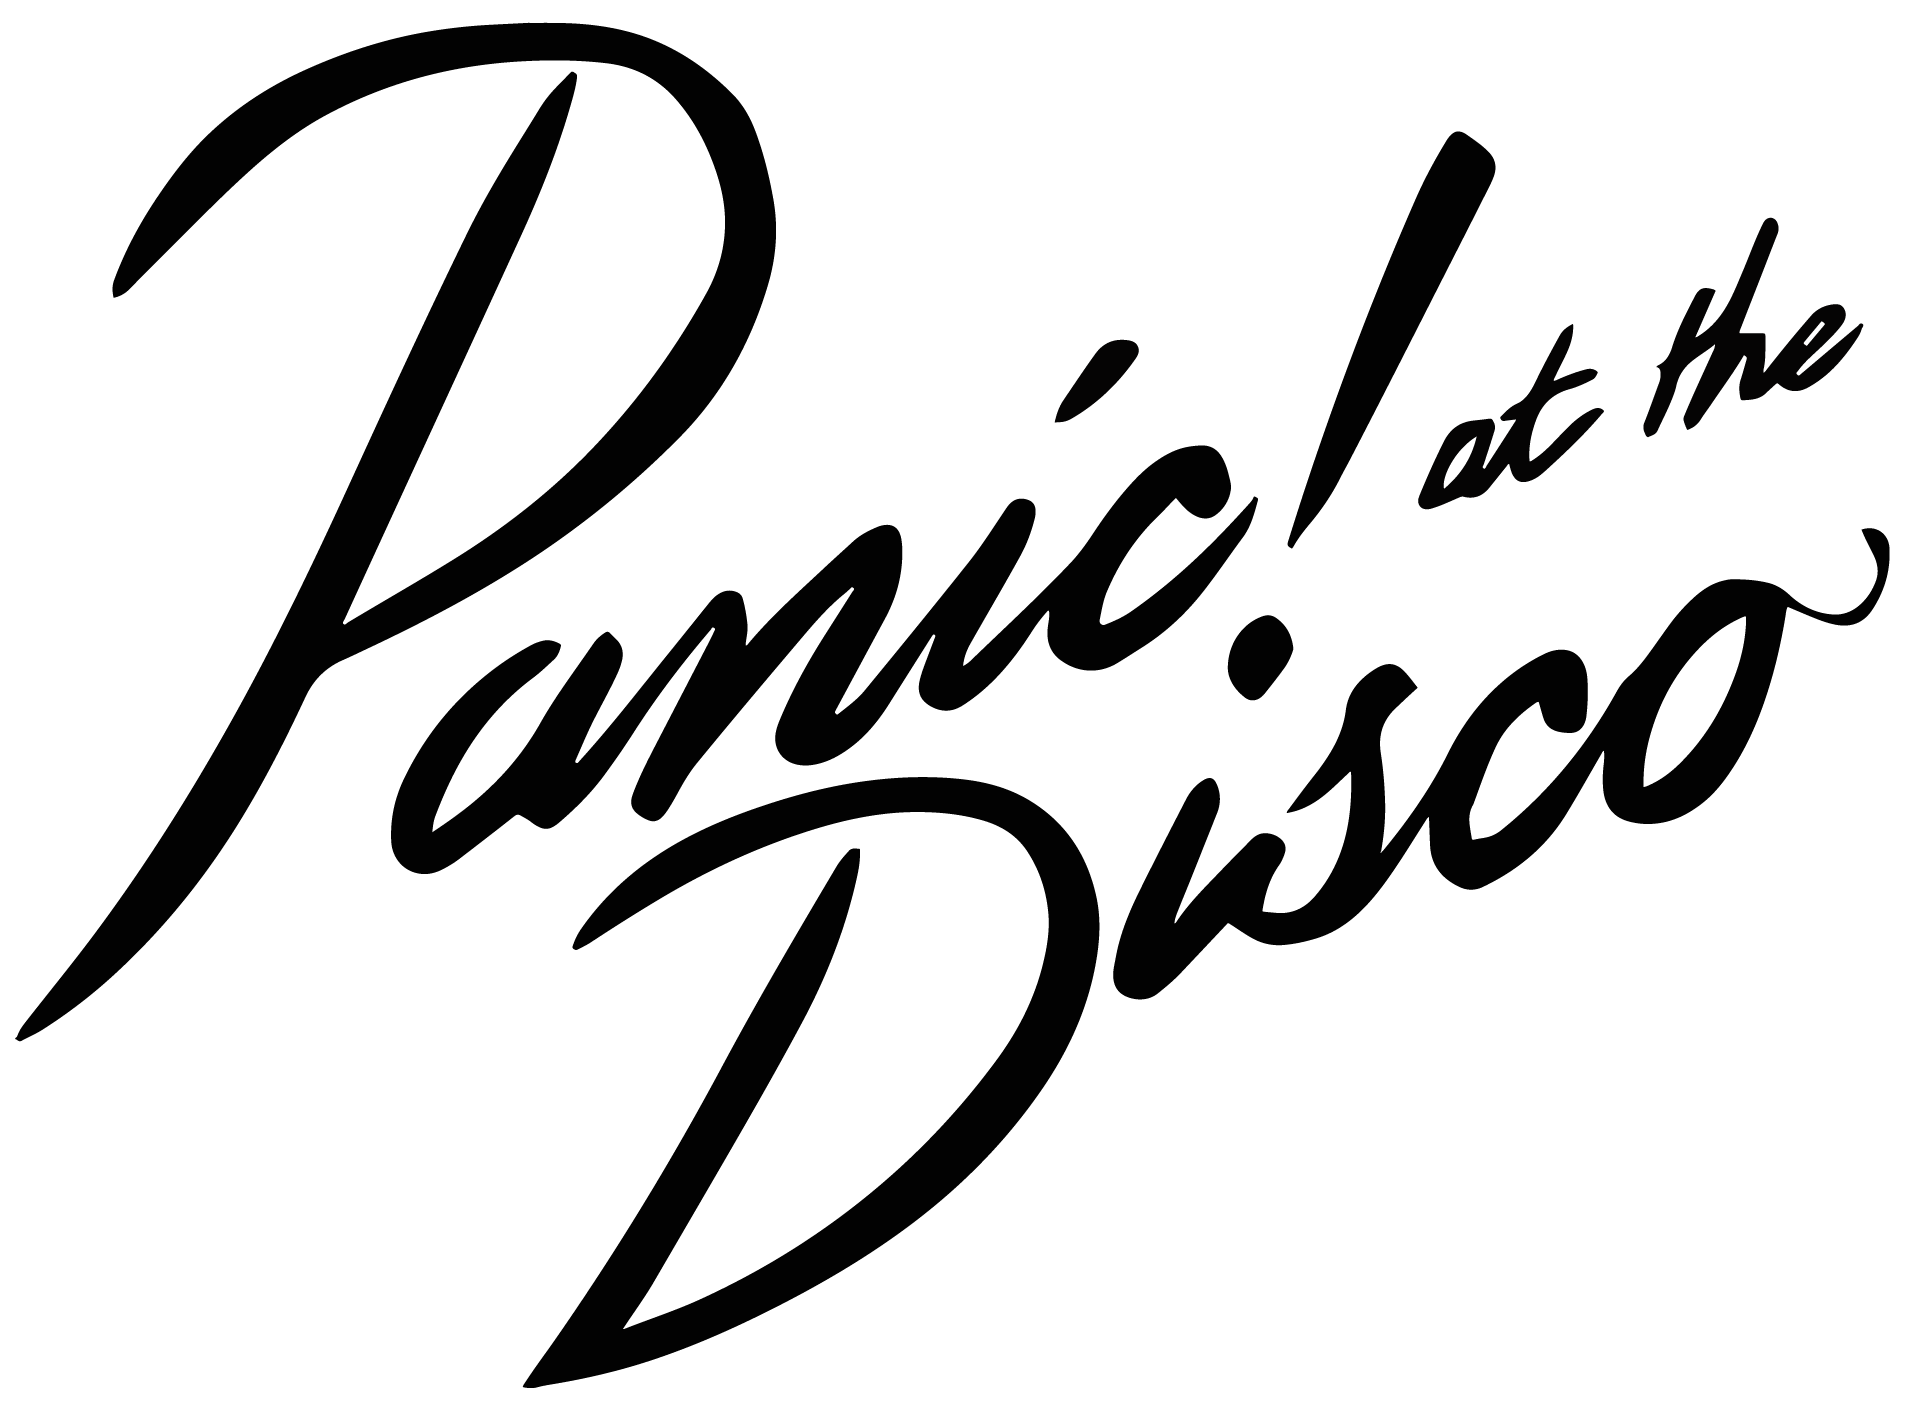 Meaning Panic at the Disco logo and symbol.